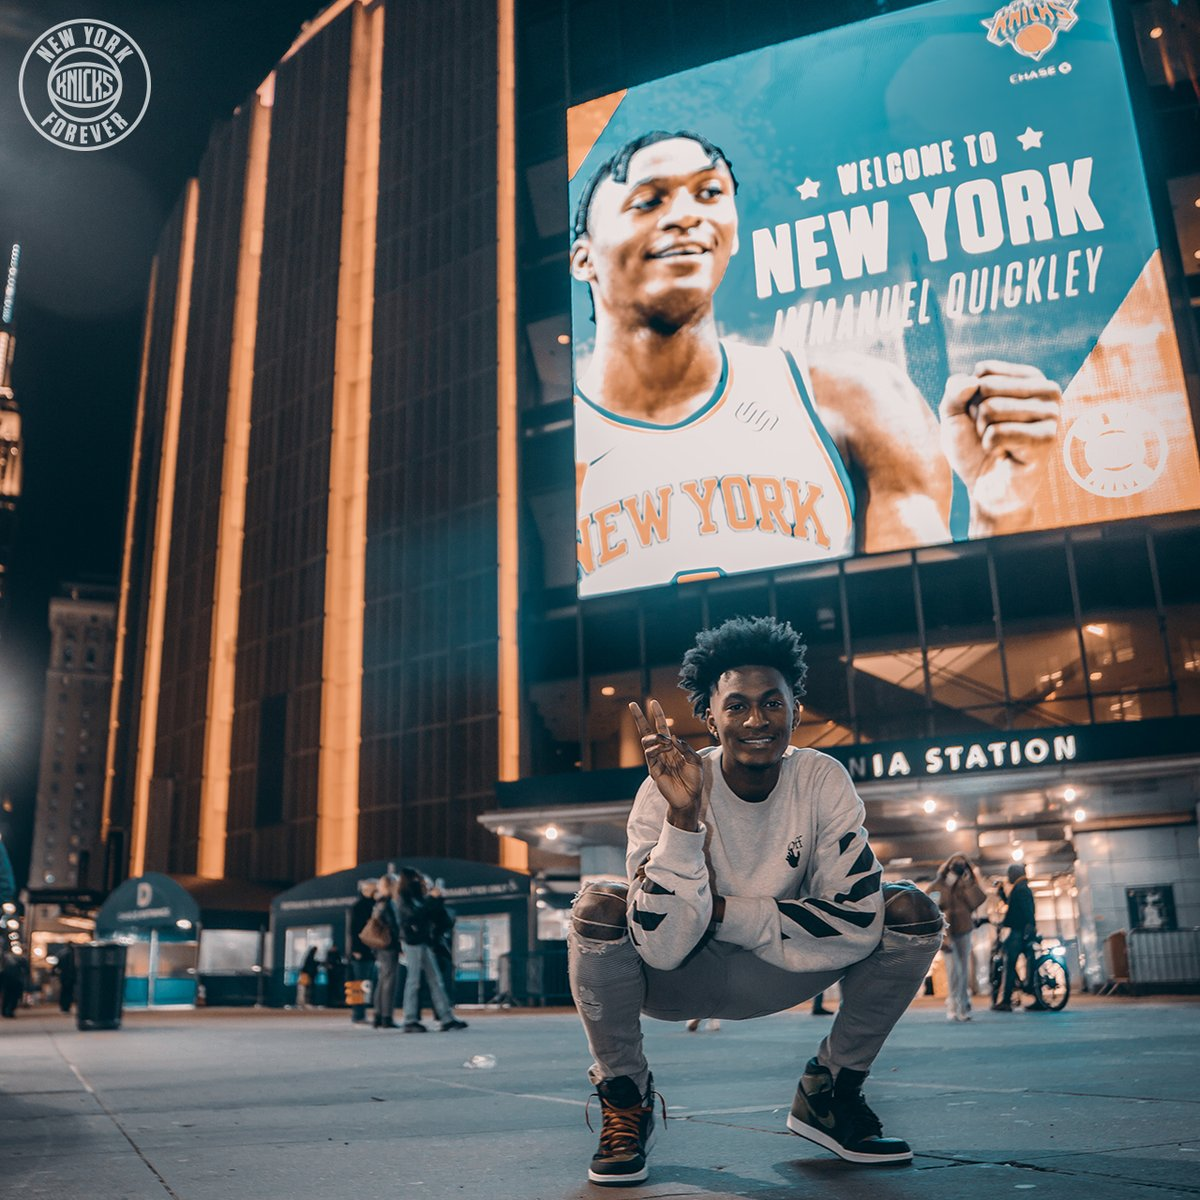 Replying to @nyknicks: Living the dream.